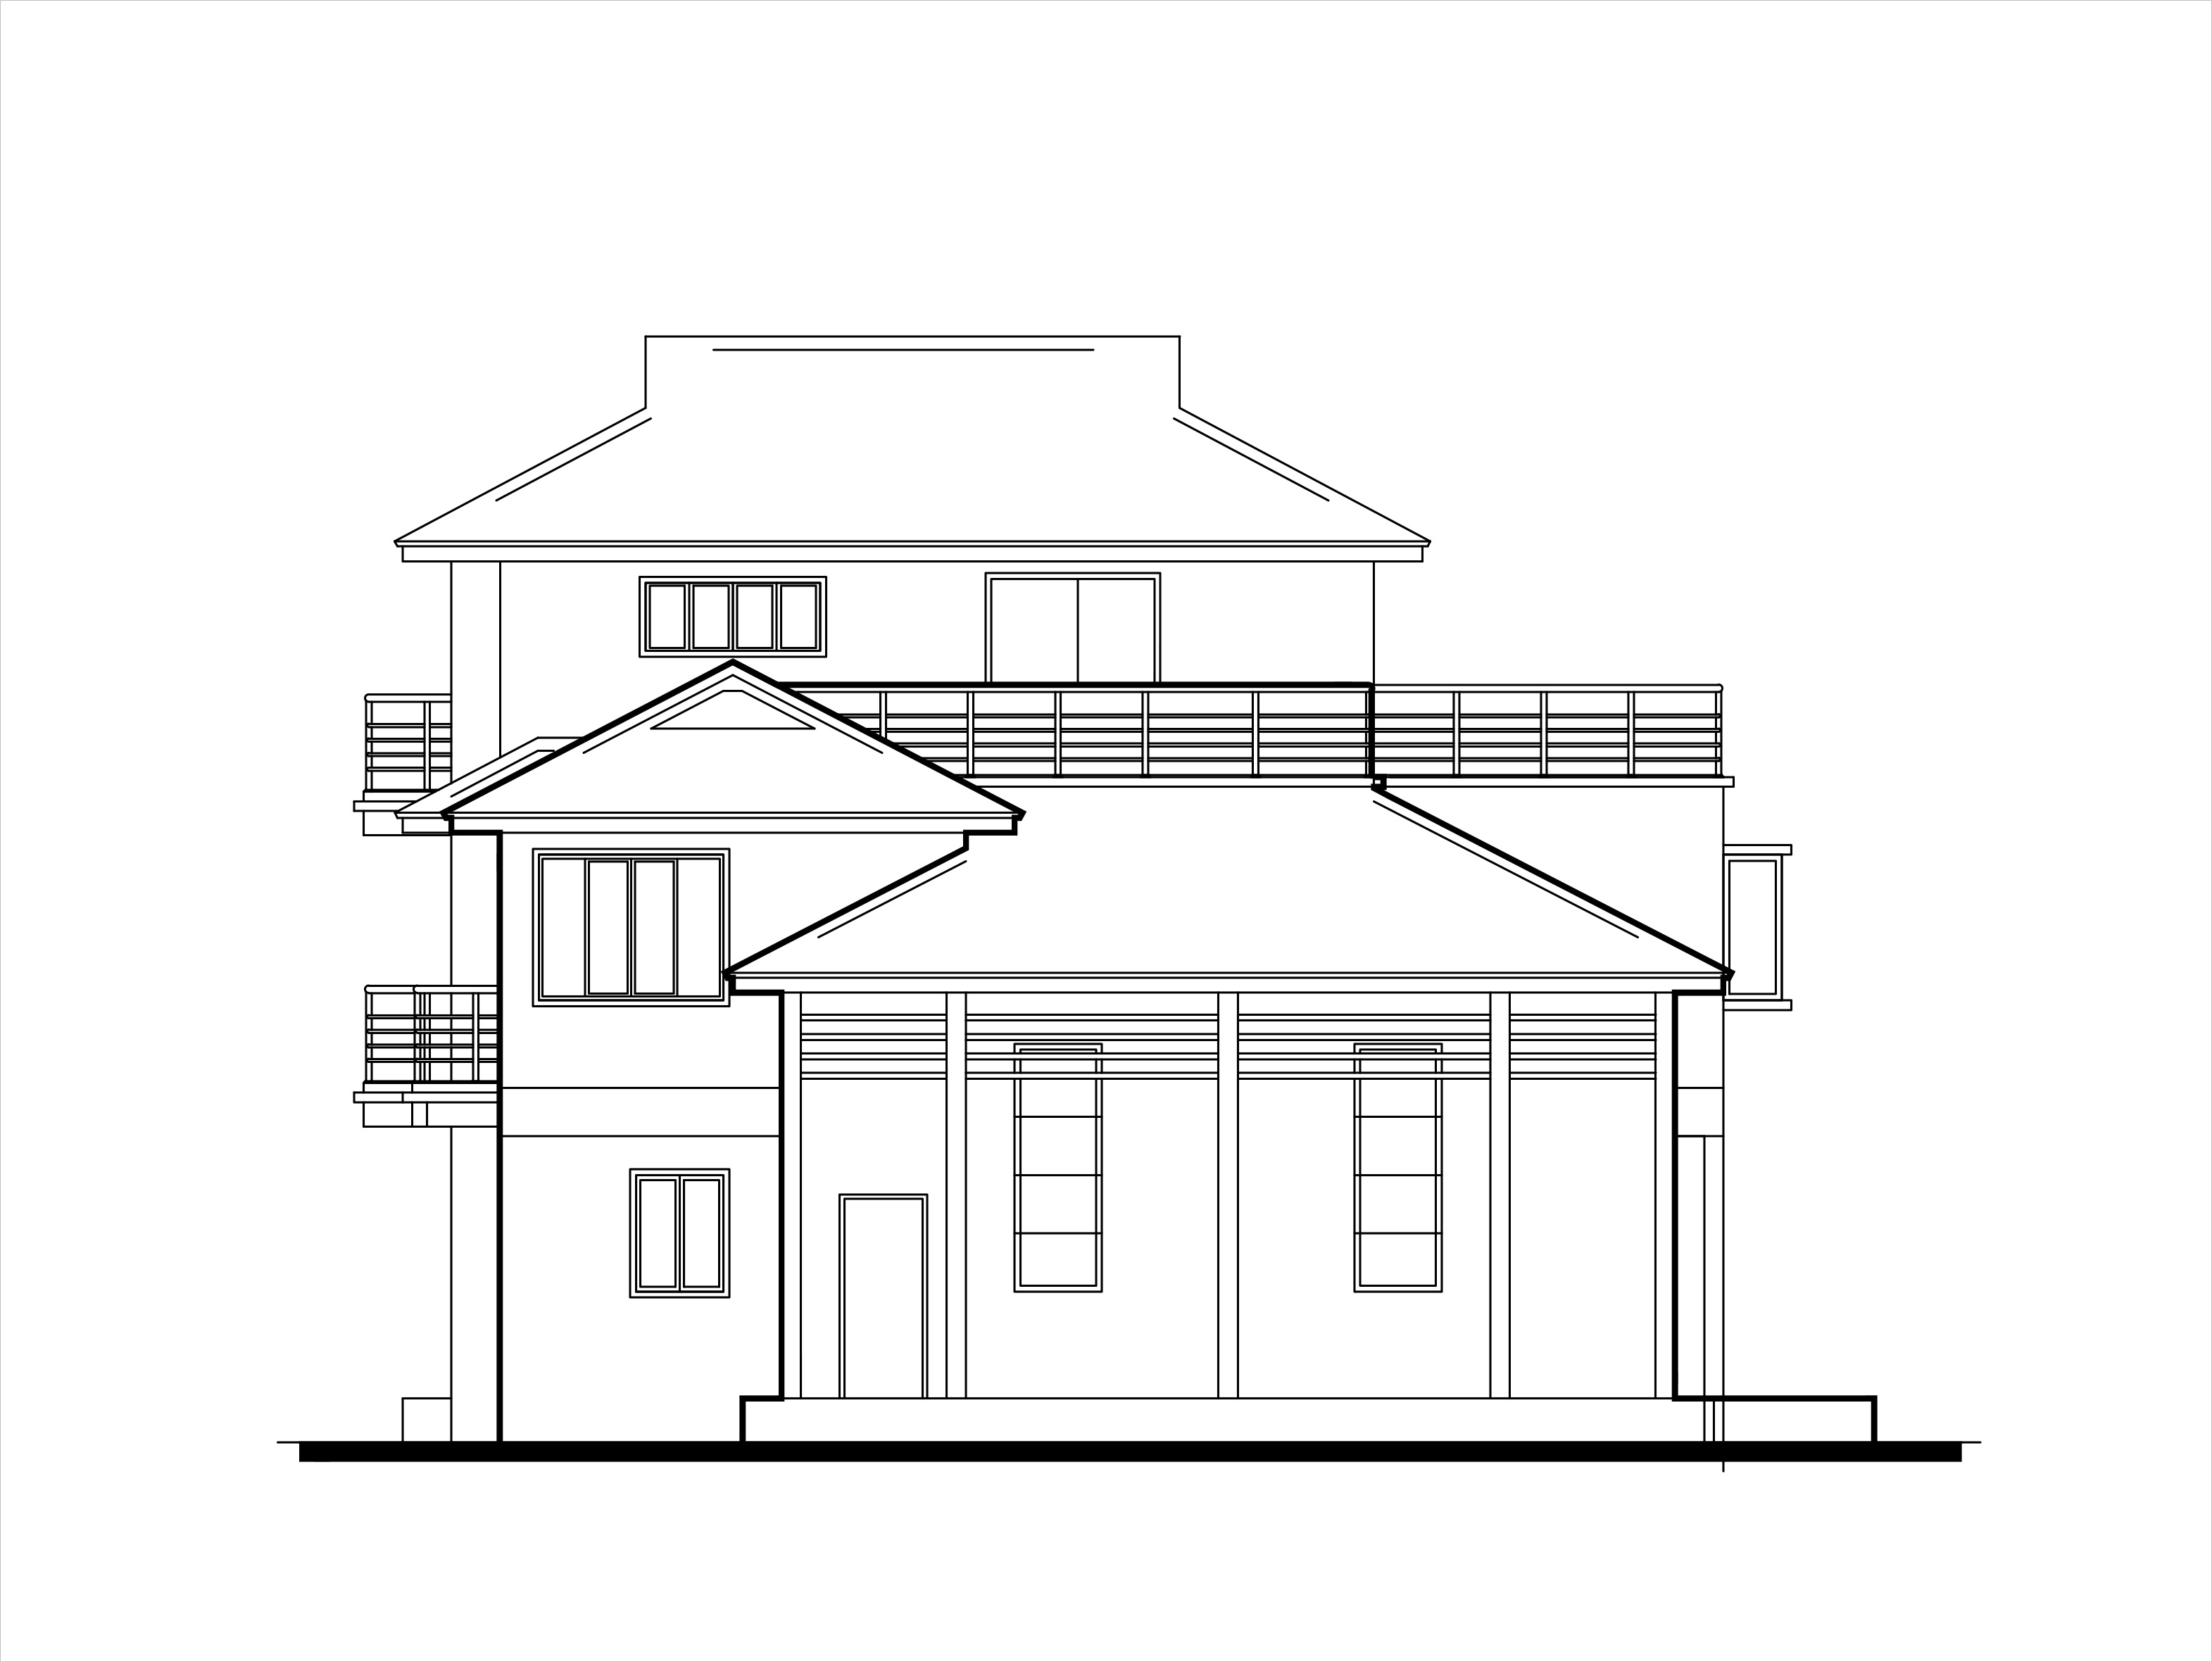 Double story low cost house plans DWGNET.COM